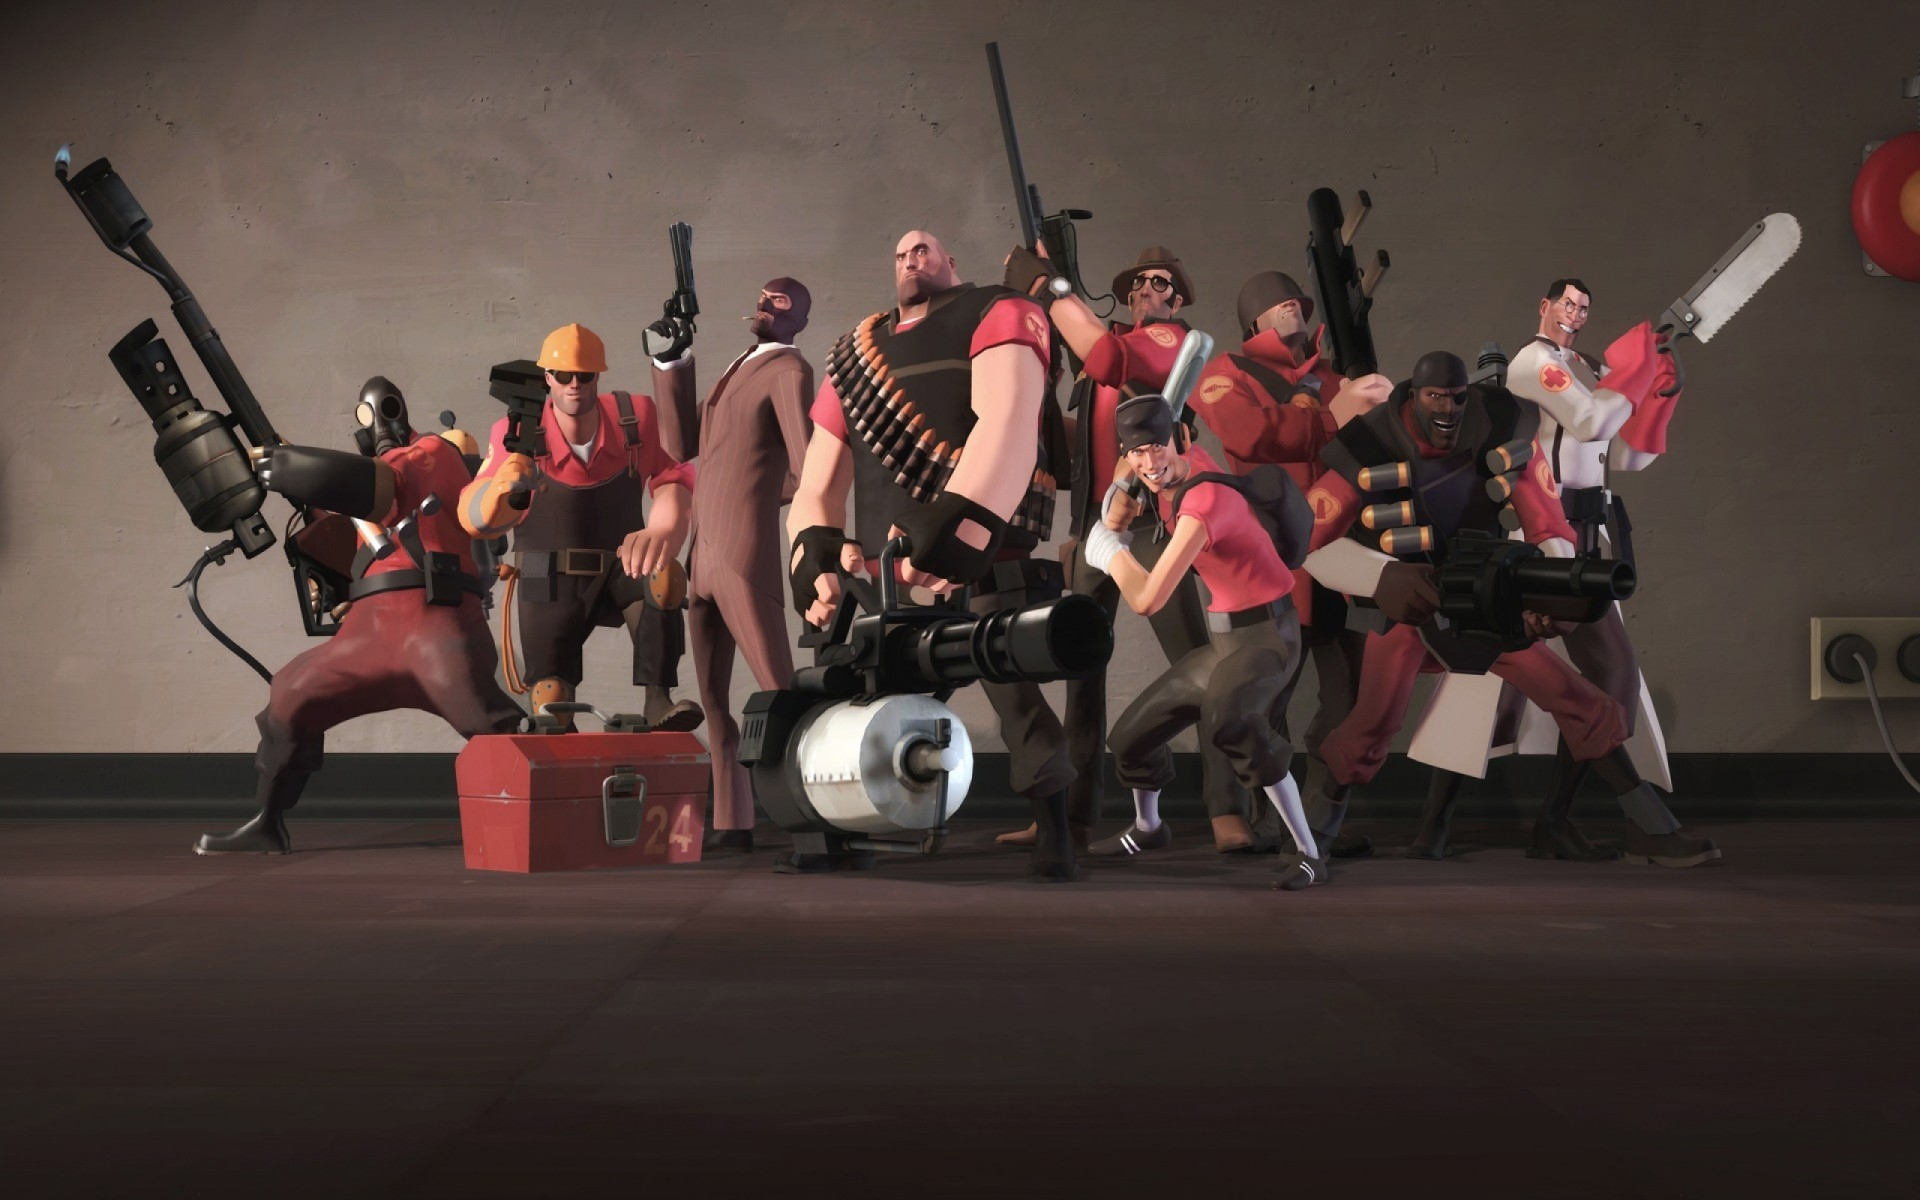 team fortress, team fortress 2, game, heavy